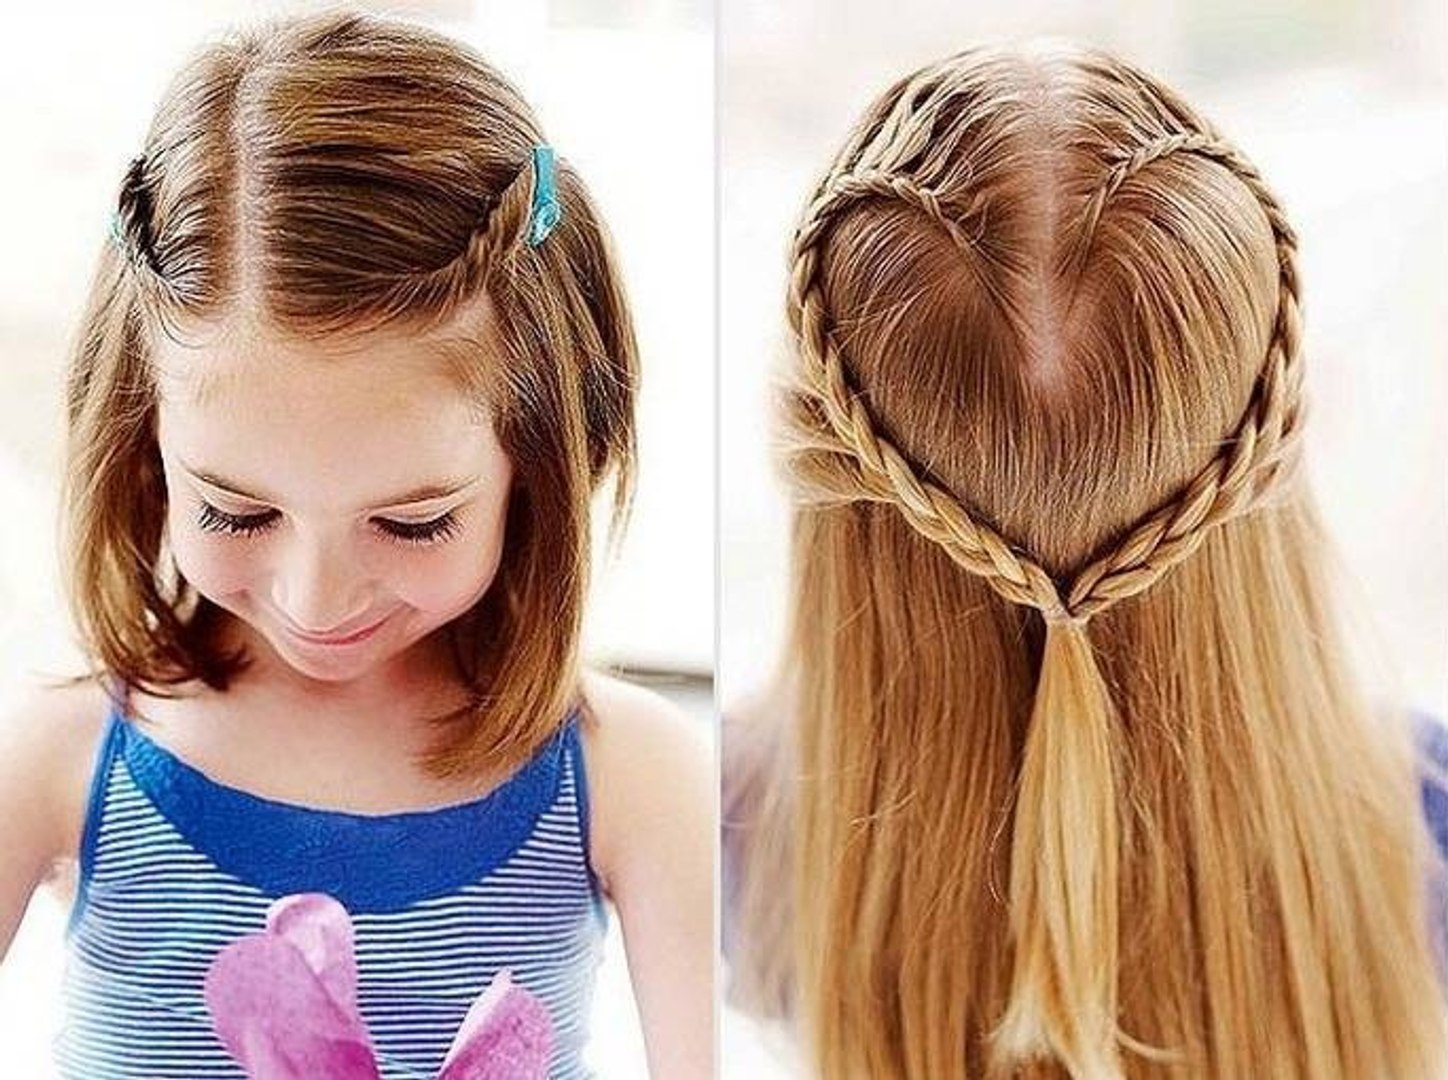 Quick Cute and Easy Hairstyles - Latest Hairstyles - Hairstyles For  School-Girls